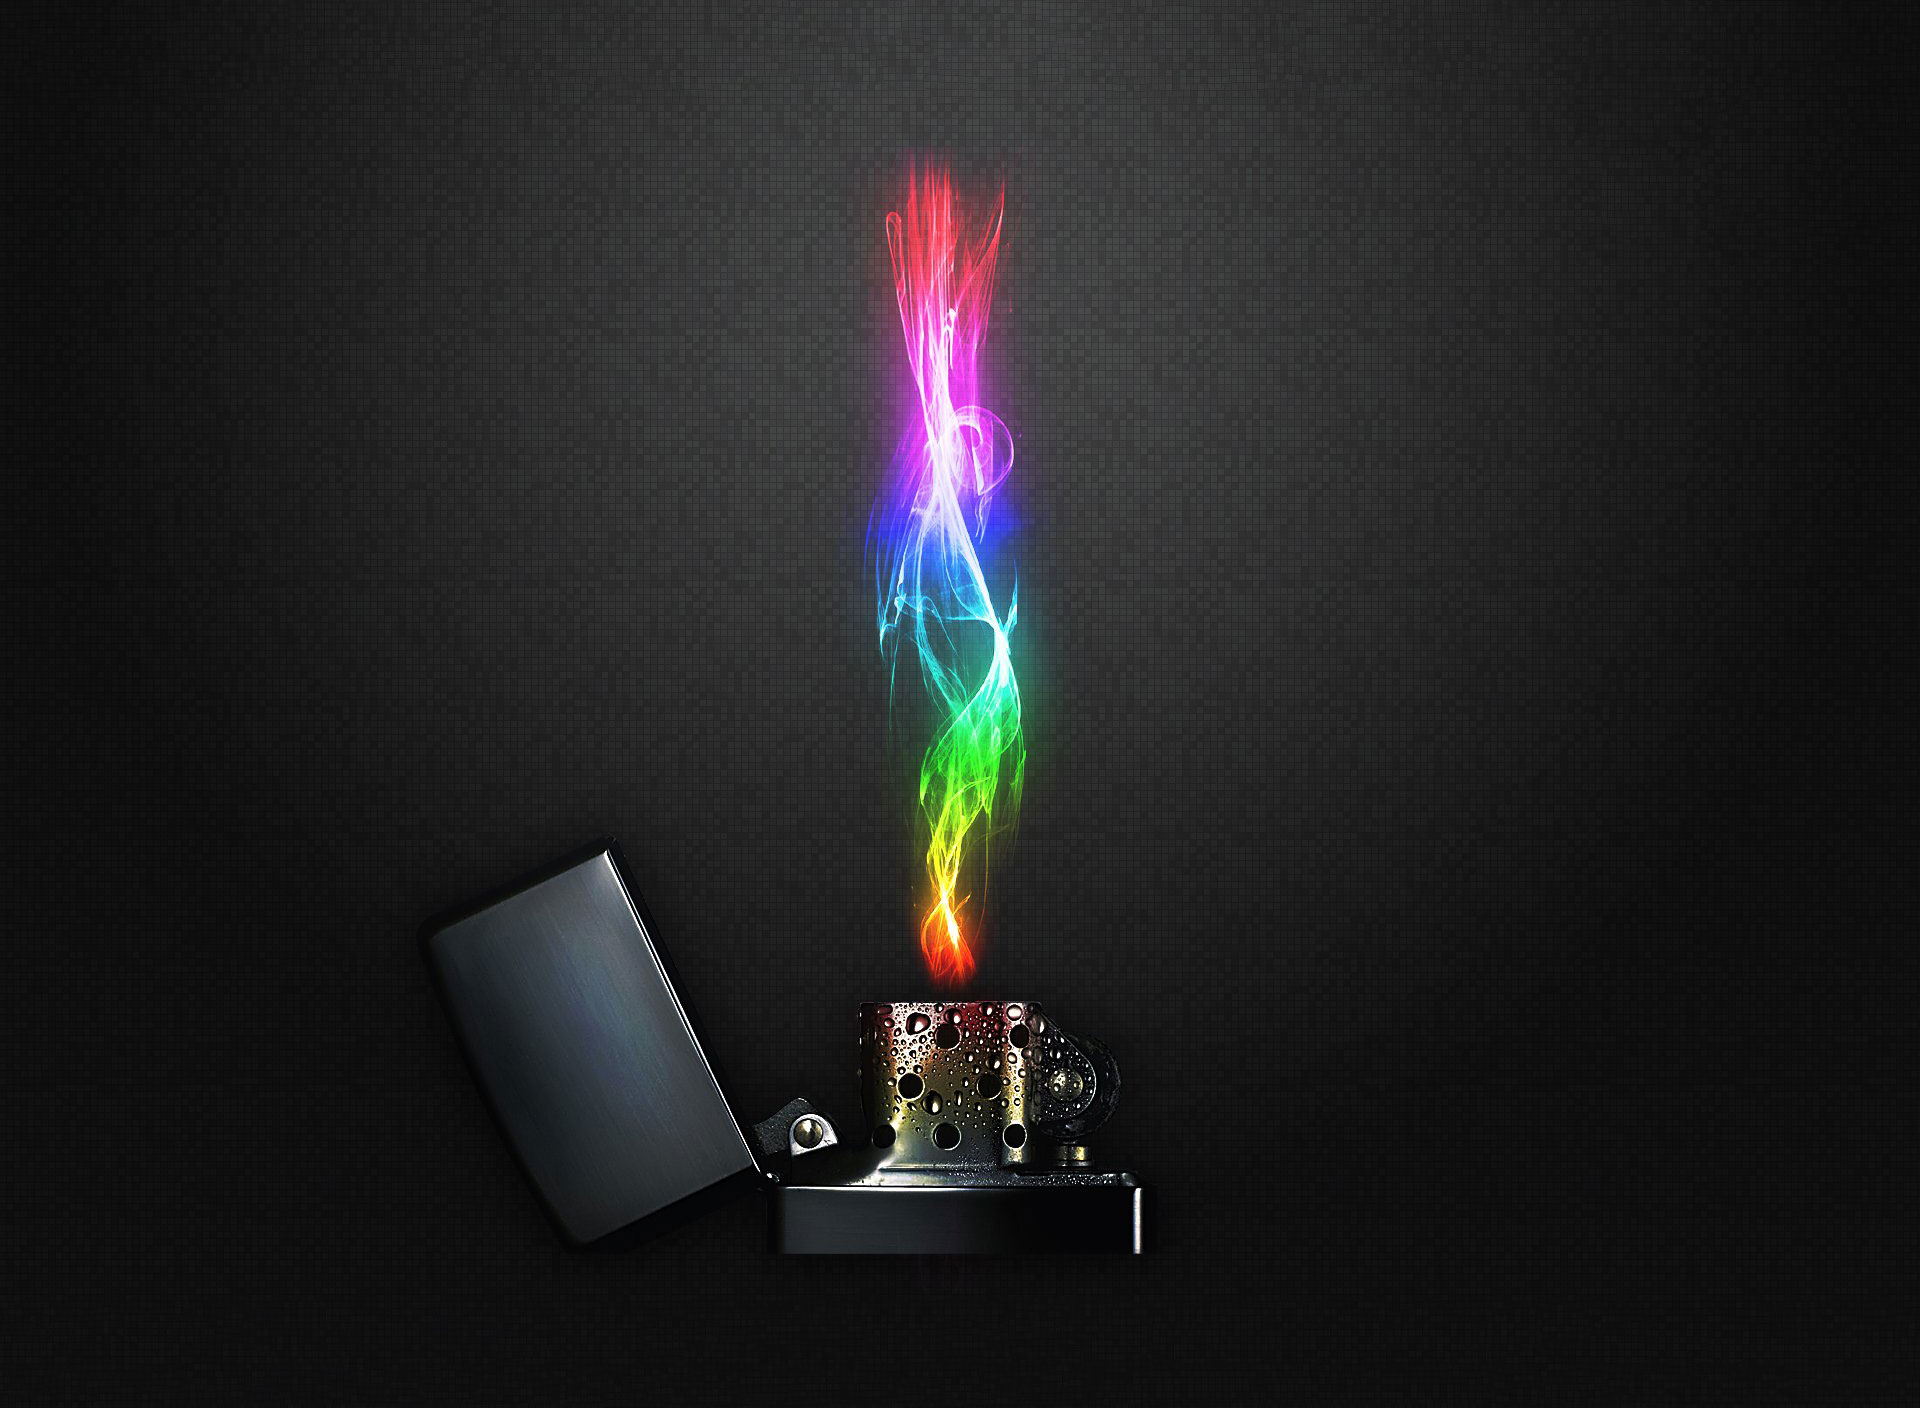 Rainbow Fire wallpaper background Other wallpapers Amazon Kindle 1920x1408